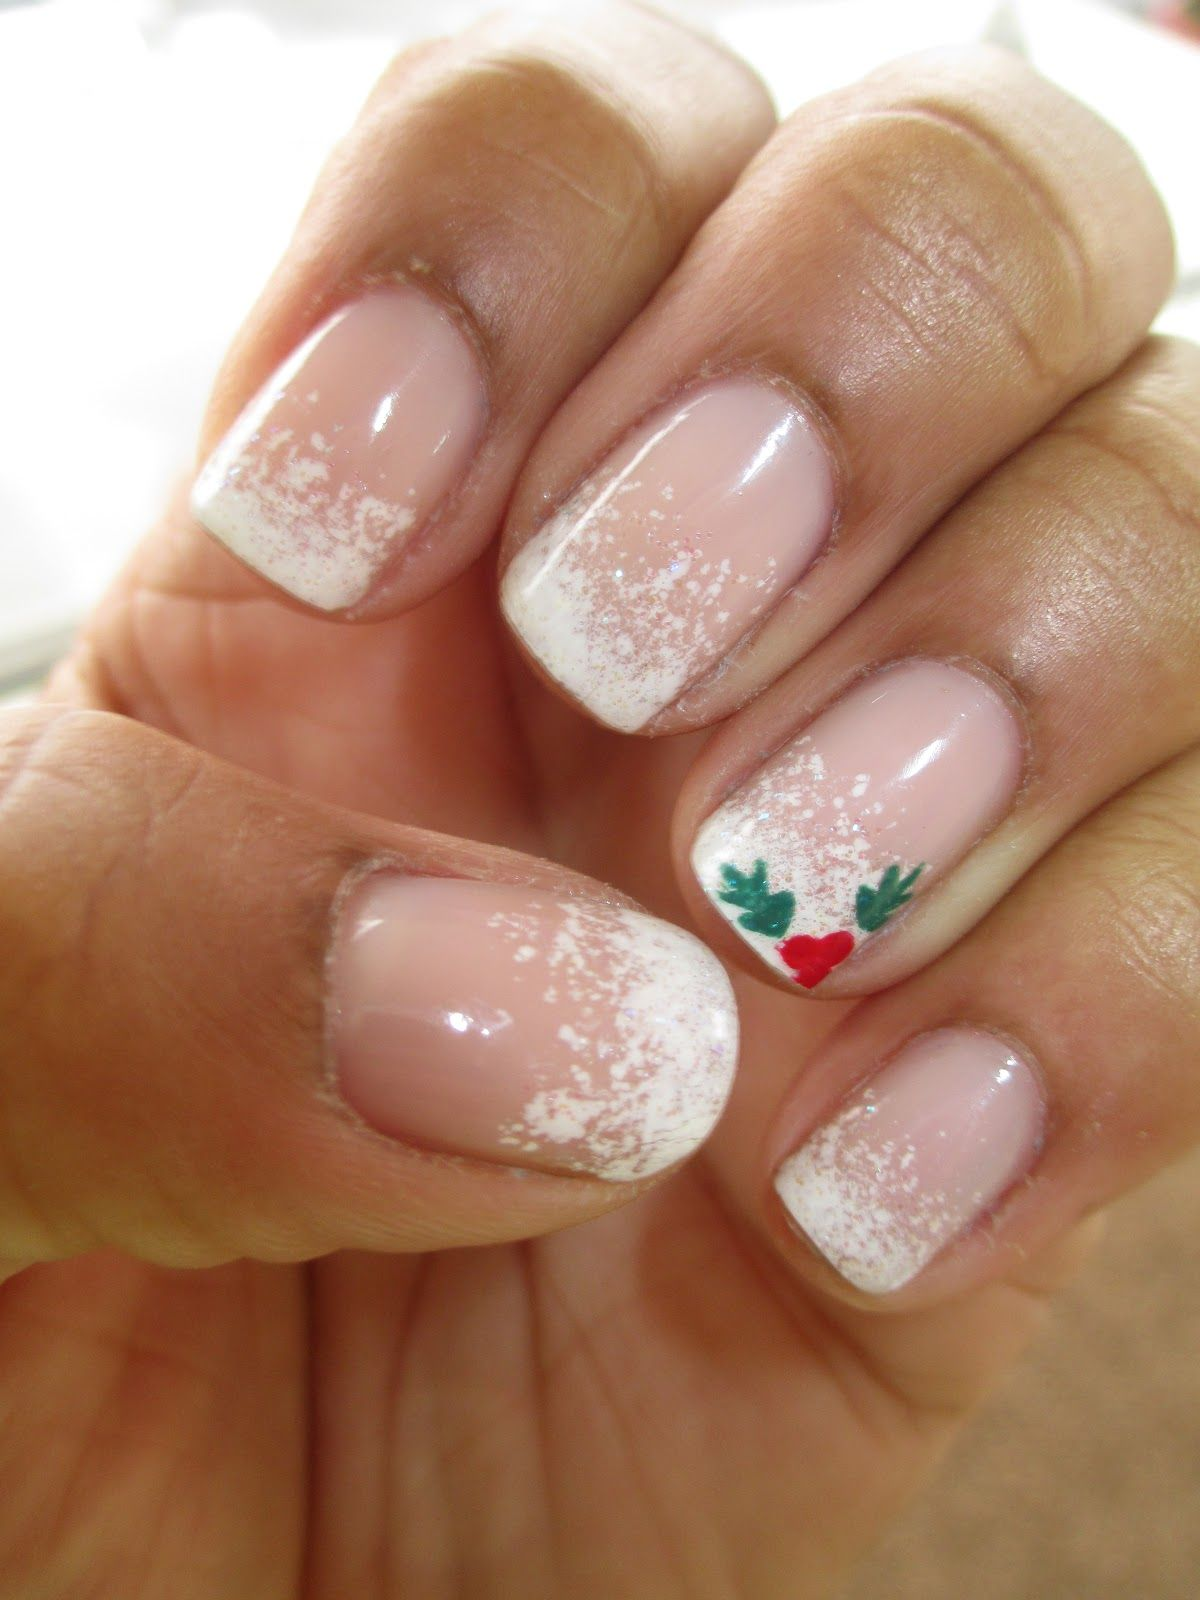 Image result for christmas french tip nail designs | Hair & Makeup ...